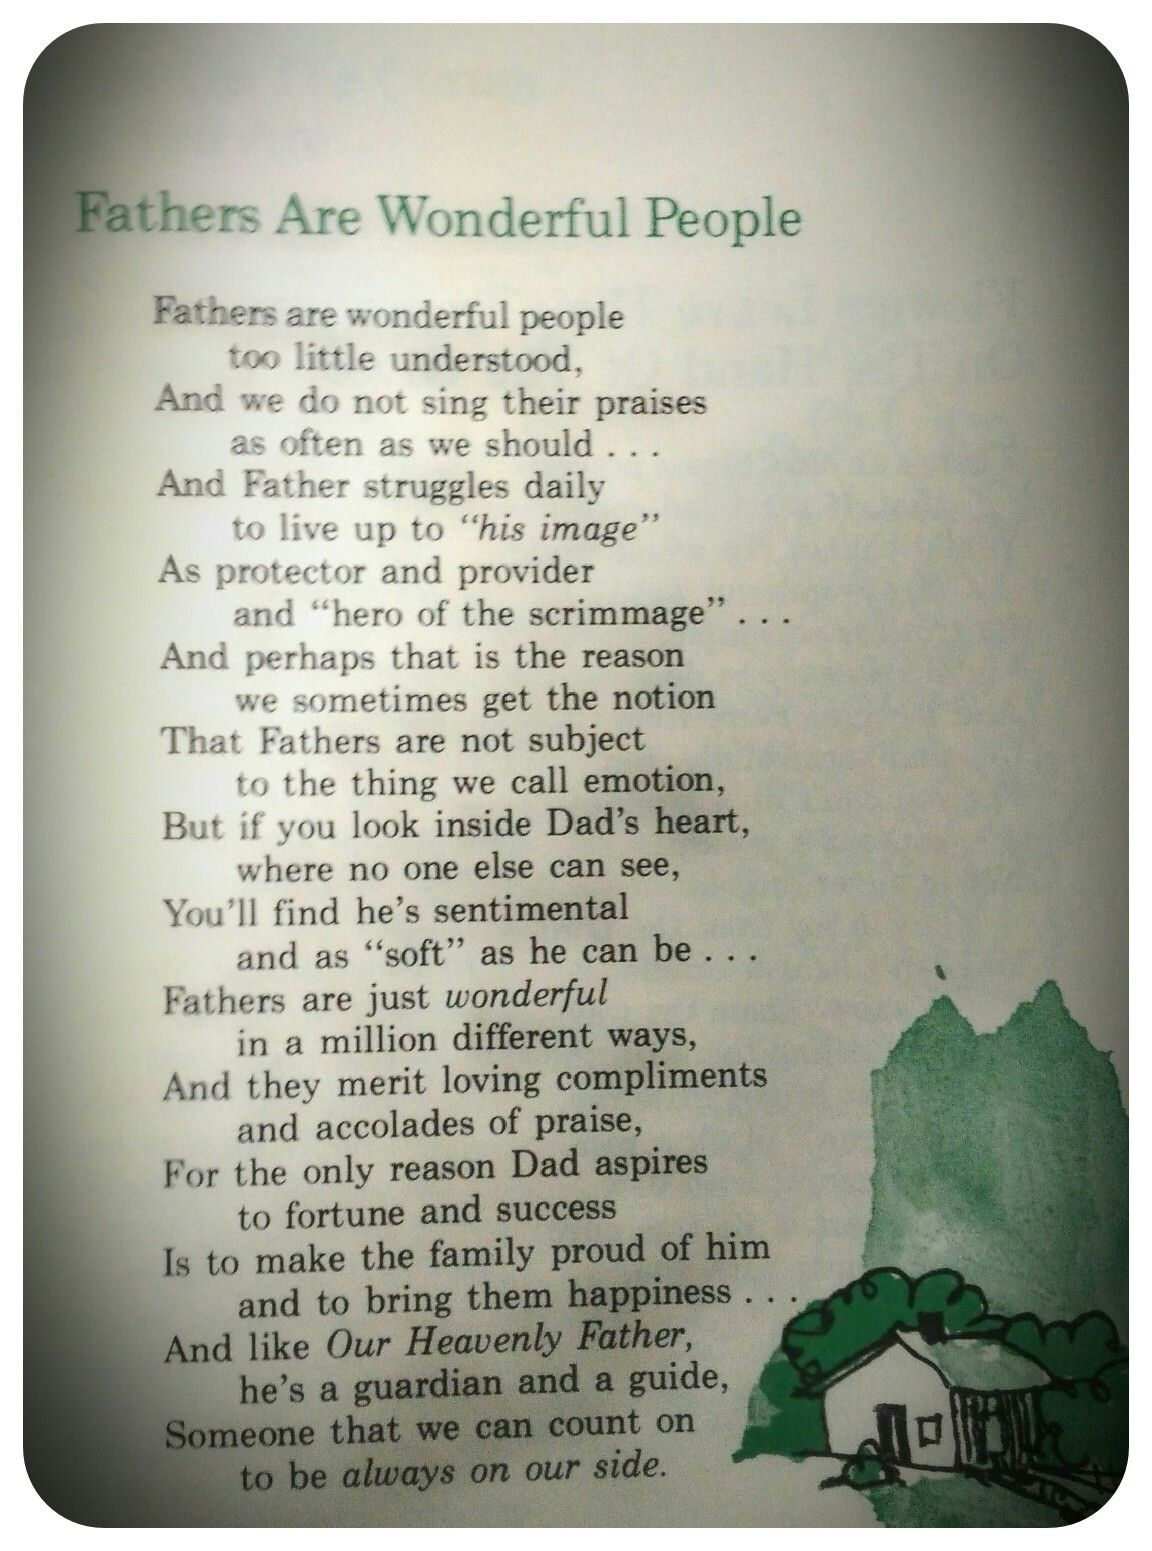 Faith Family Friends Poem - Year of Clean Water